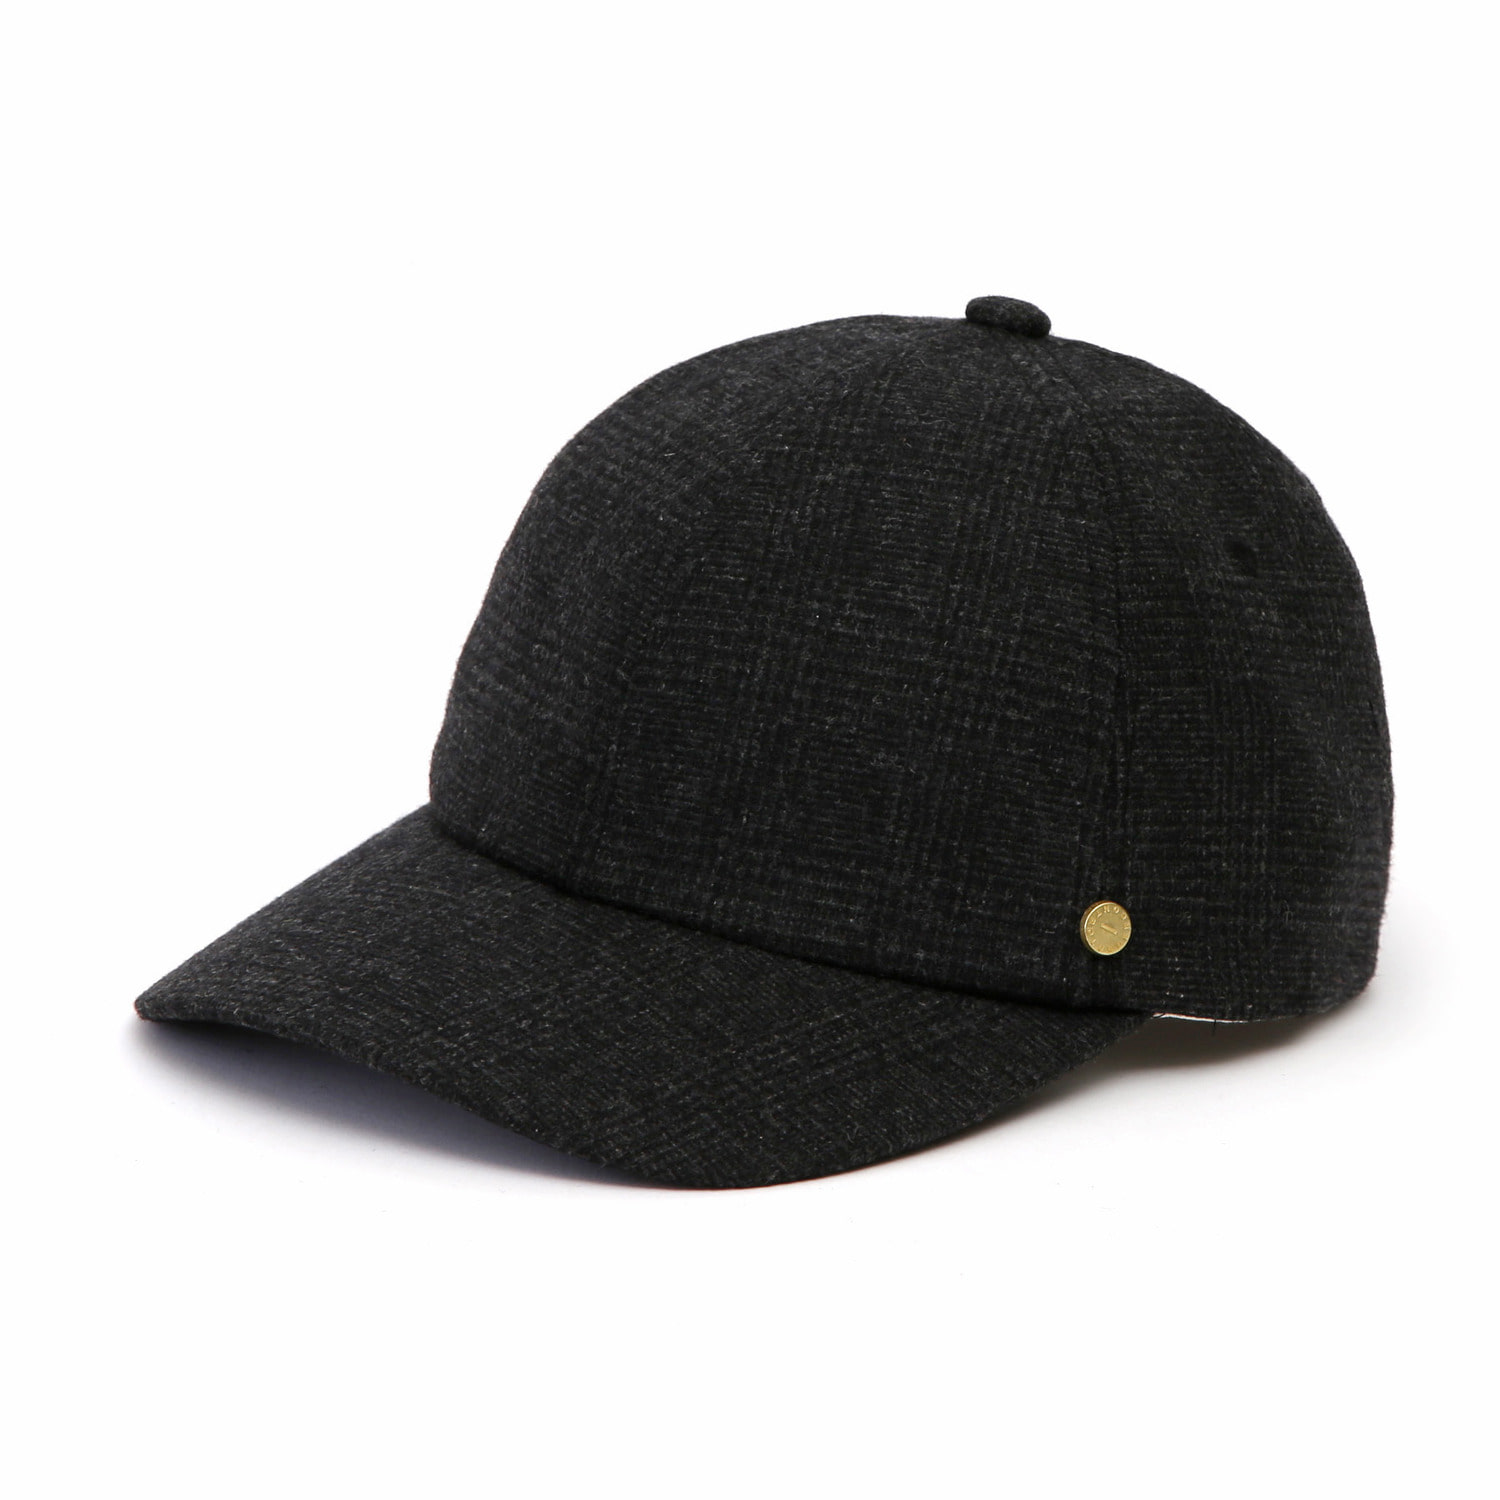 6PANNEL BALL CAP / MODS GLEN / BLACK